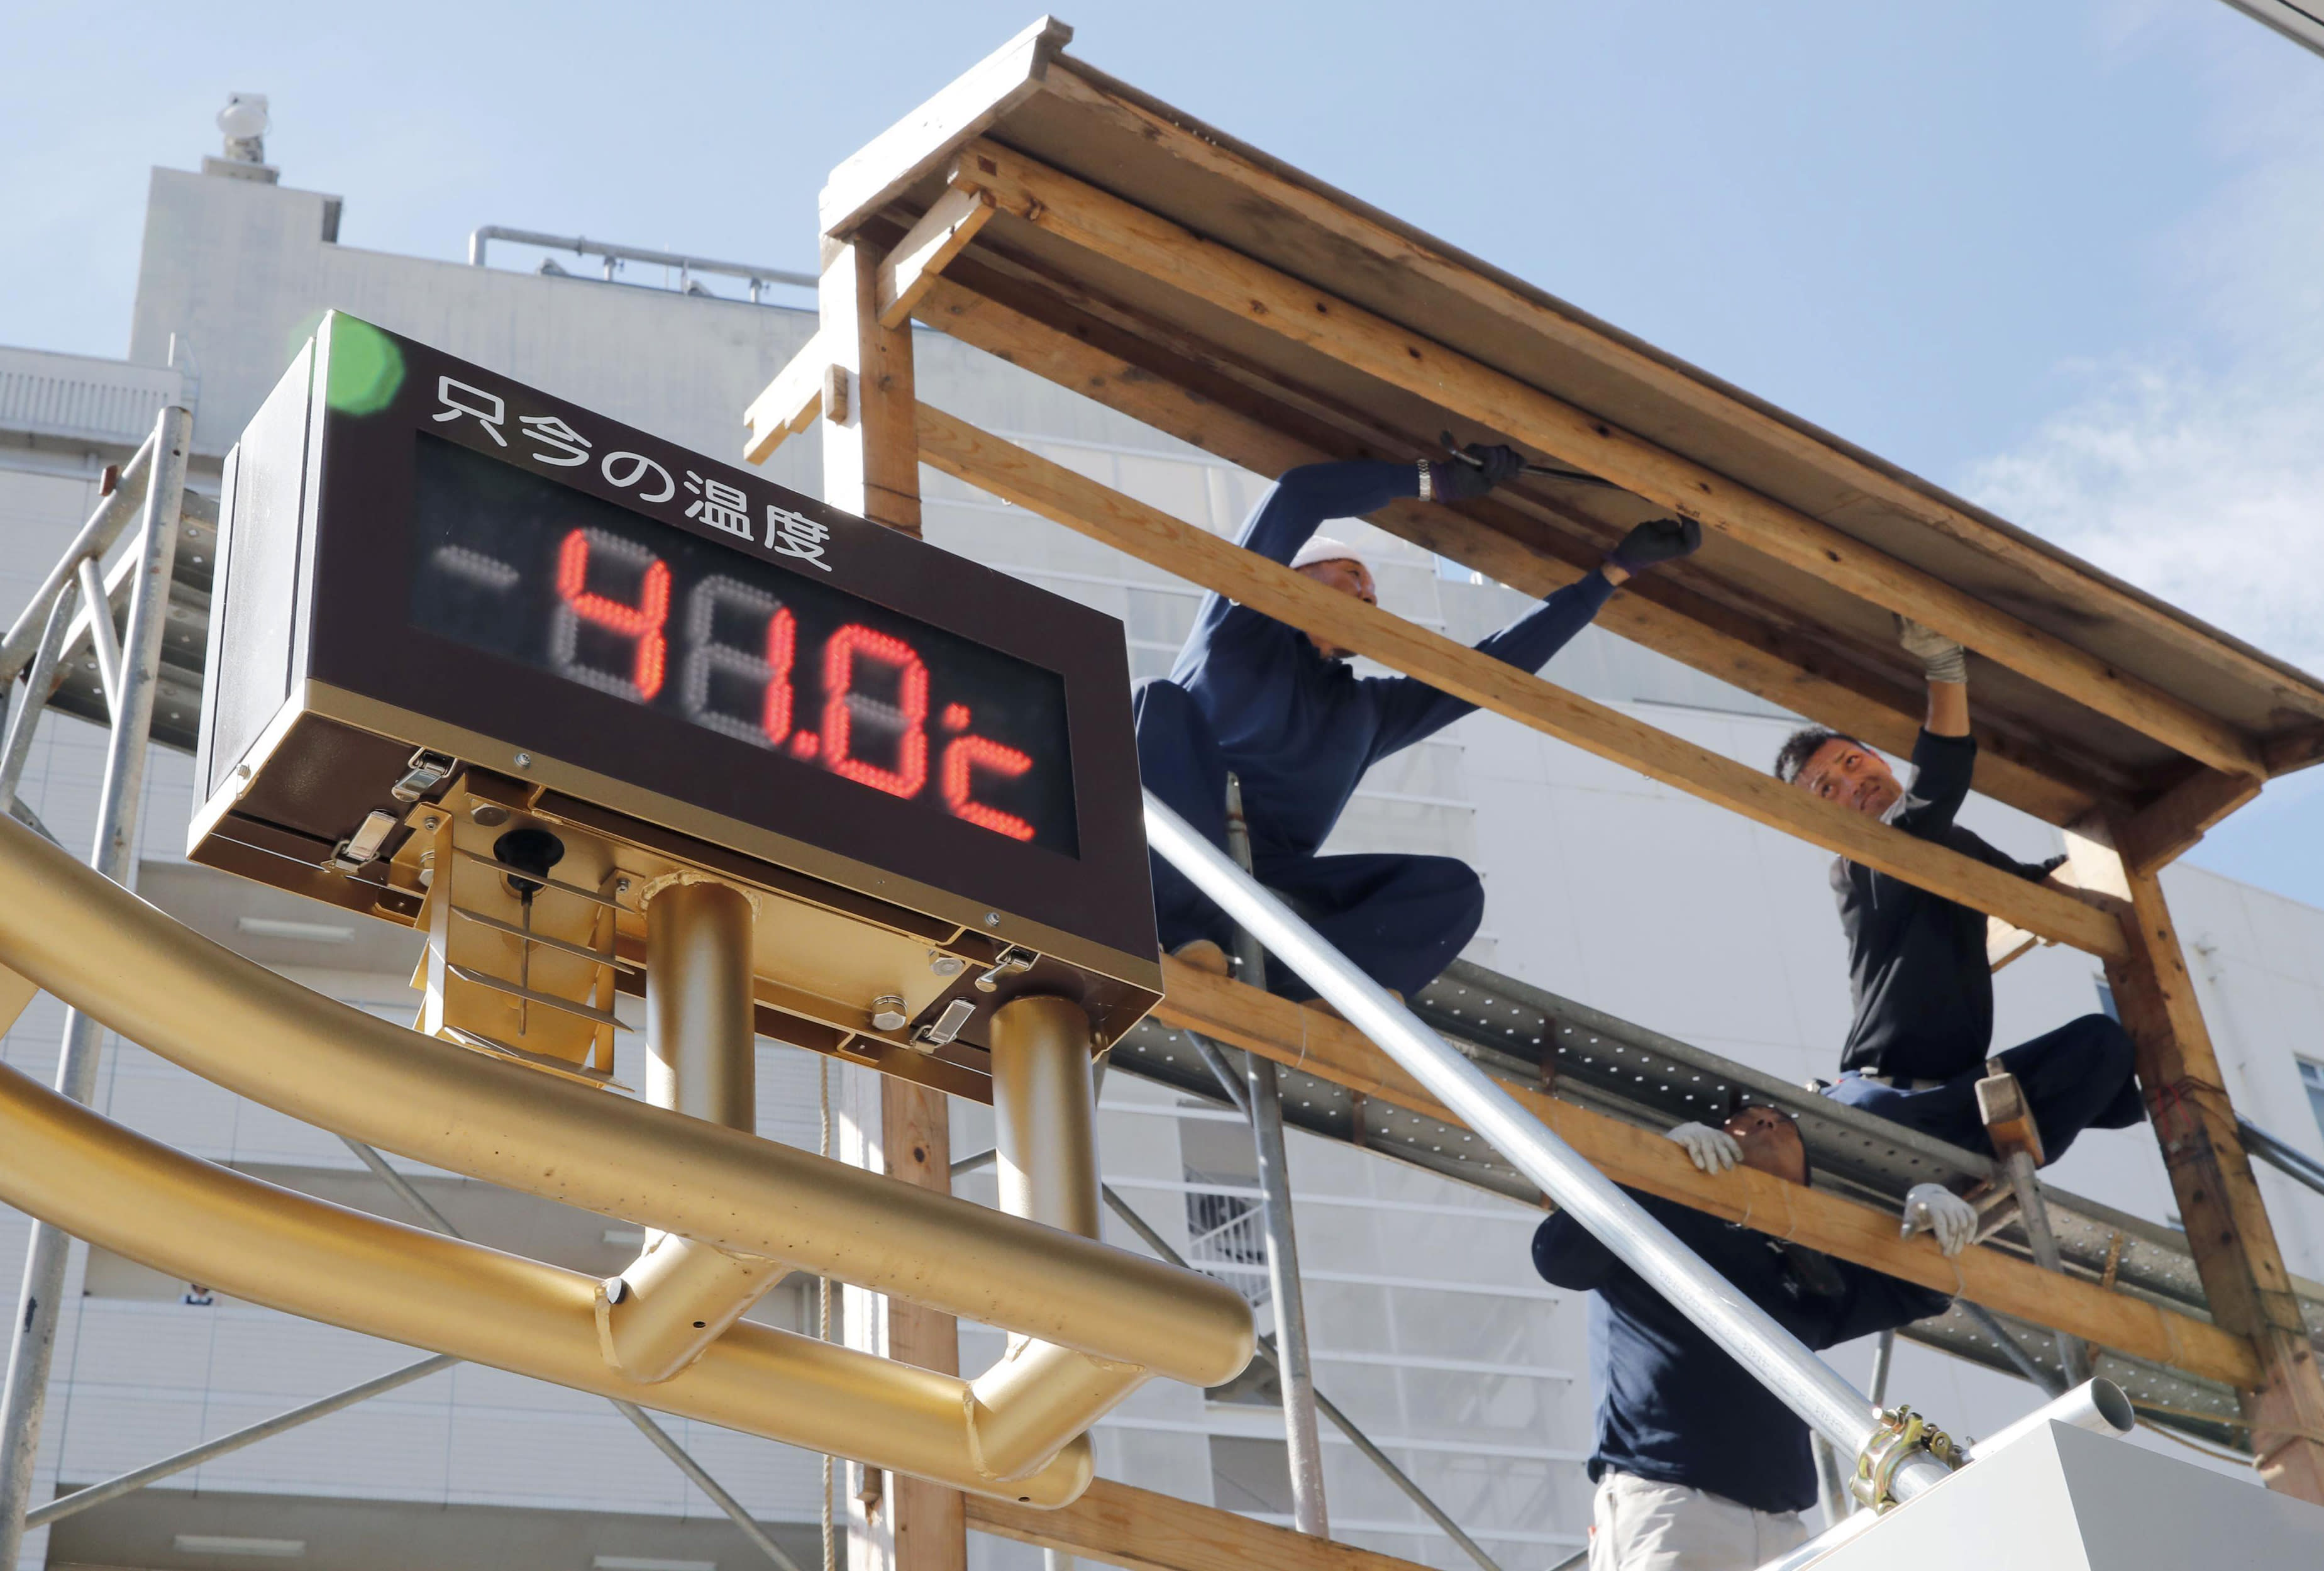 <p>The thermometer reads 41.0 degrees Celsius (105.8 degrees Fahrenheit) in Kumagaya city, north of Tokyo, July 23, 2018. Searing hot temperatures are forecast for wide swaths of Japan and South Korea in a long-running heat wave. The temperature in the city north of Tokyo reached 41.1 degrees Celsius (106 degrees Fahrenheit) on Monday, the highest ever recorded in Japan, as a deadly heat wave gripped a wide swath of the country and nearby South Korea. (Photo: Daiki Katagiri/Kyodo News via AP) </p>